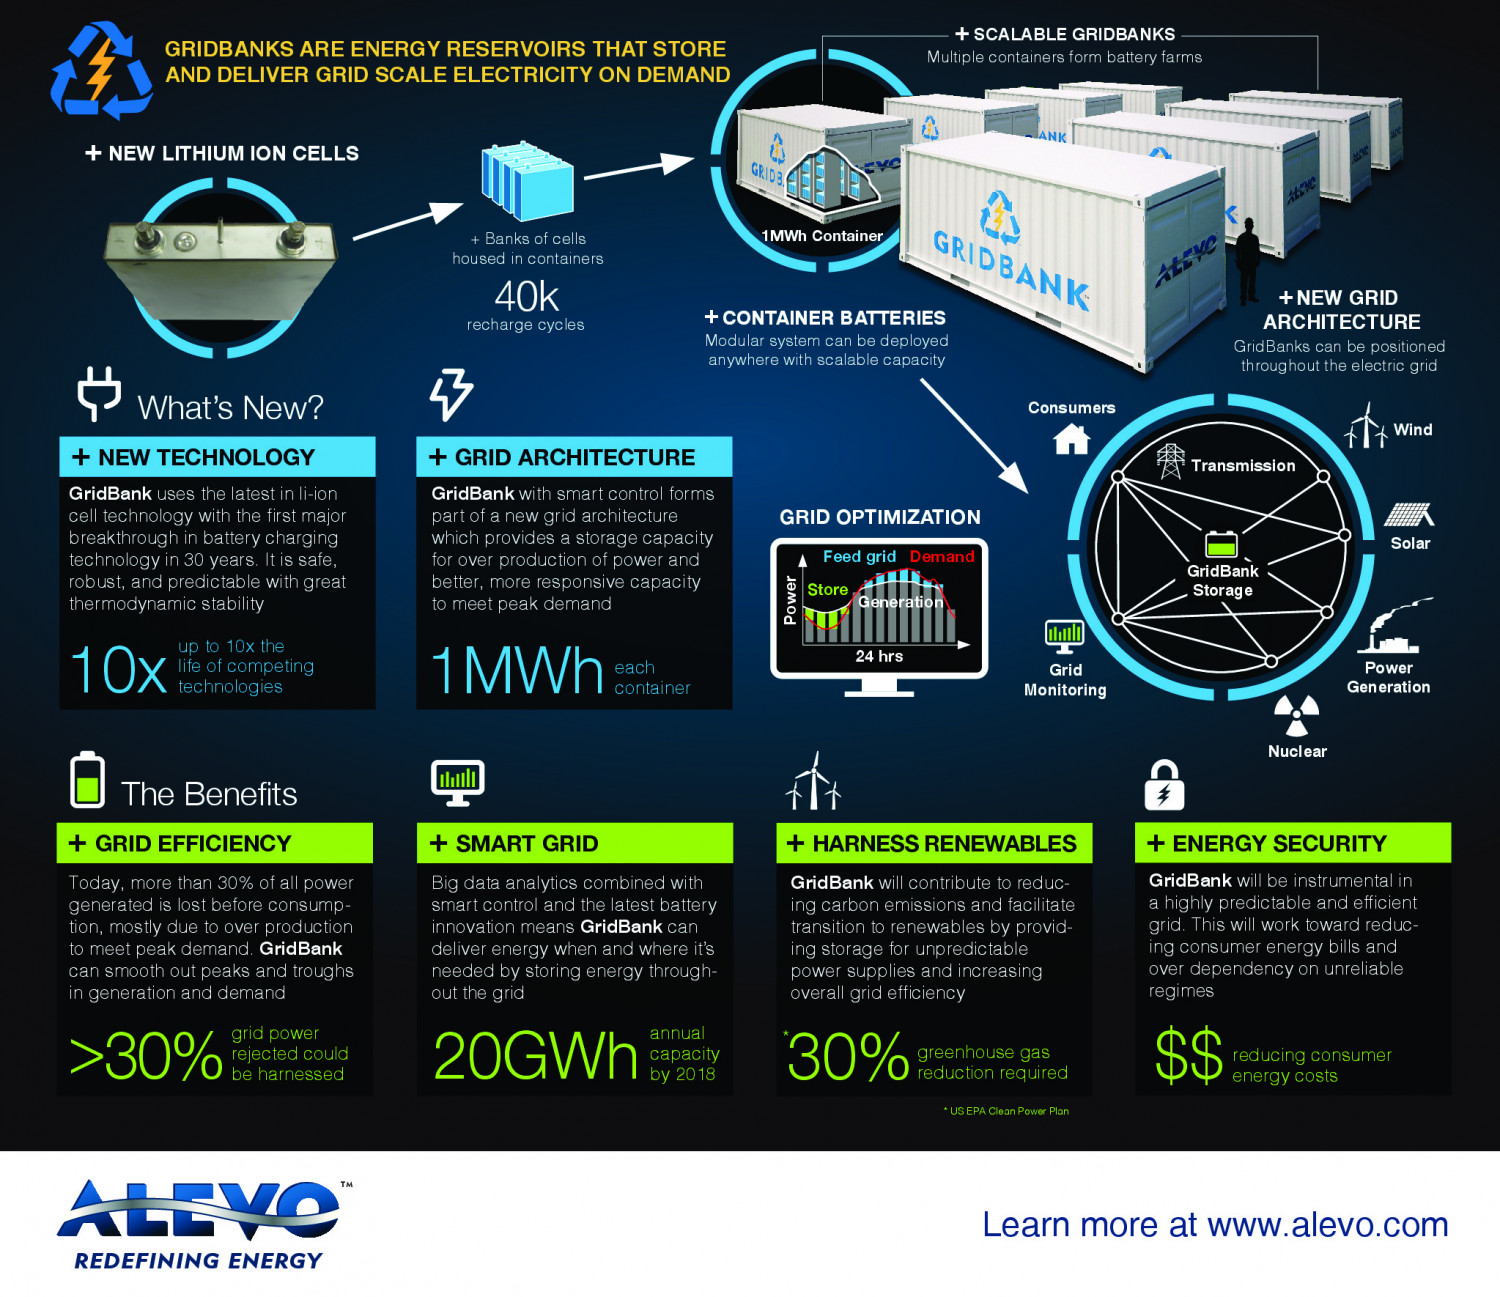 ALEVO GRIDBANKS STORE AND DELIVER GRID SCALE ELECTRICITY ON DEMAND Infographic